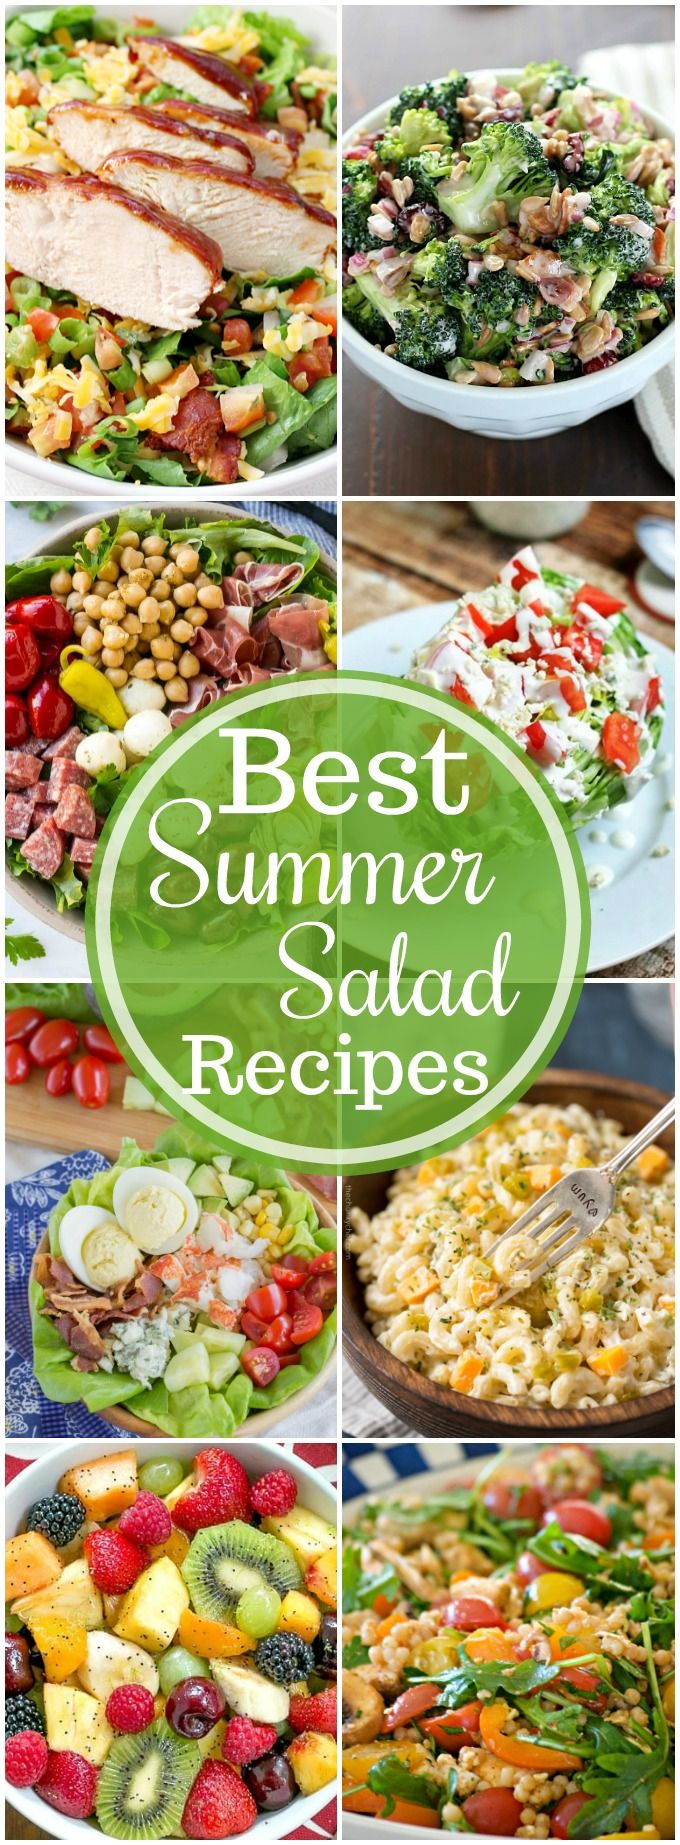 Hot weather is here and that means you need the Best Summer Salad Recipes! Whip these up for your next BBQ and leave your guests begging for more!